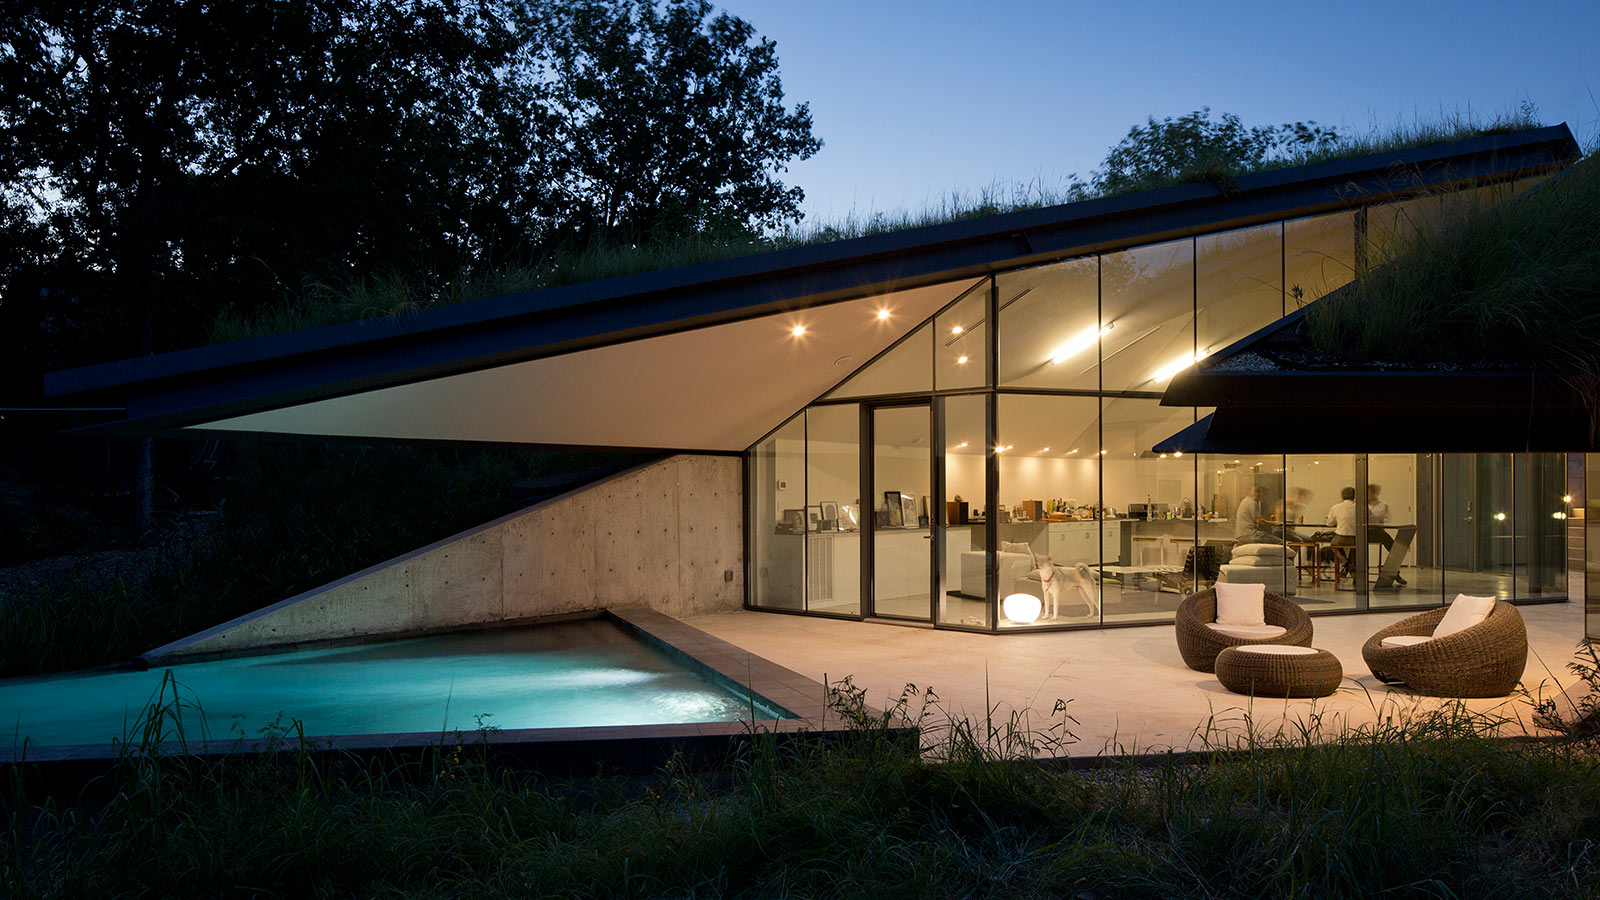 Futuristic House Fair Edgeland Residence A Futuristic House With A Smart Pool Fit For A Design Decoration